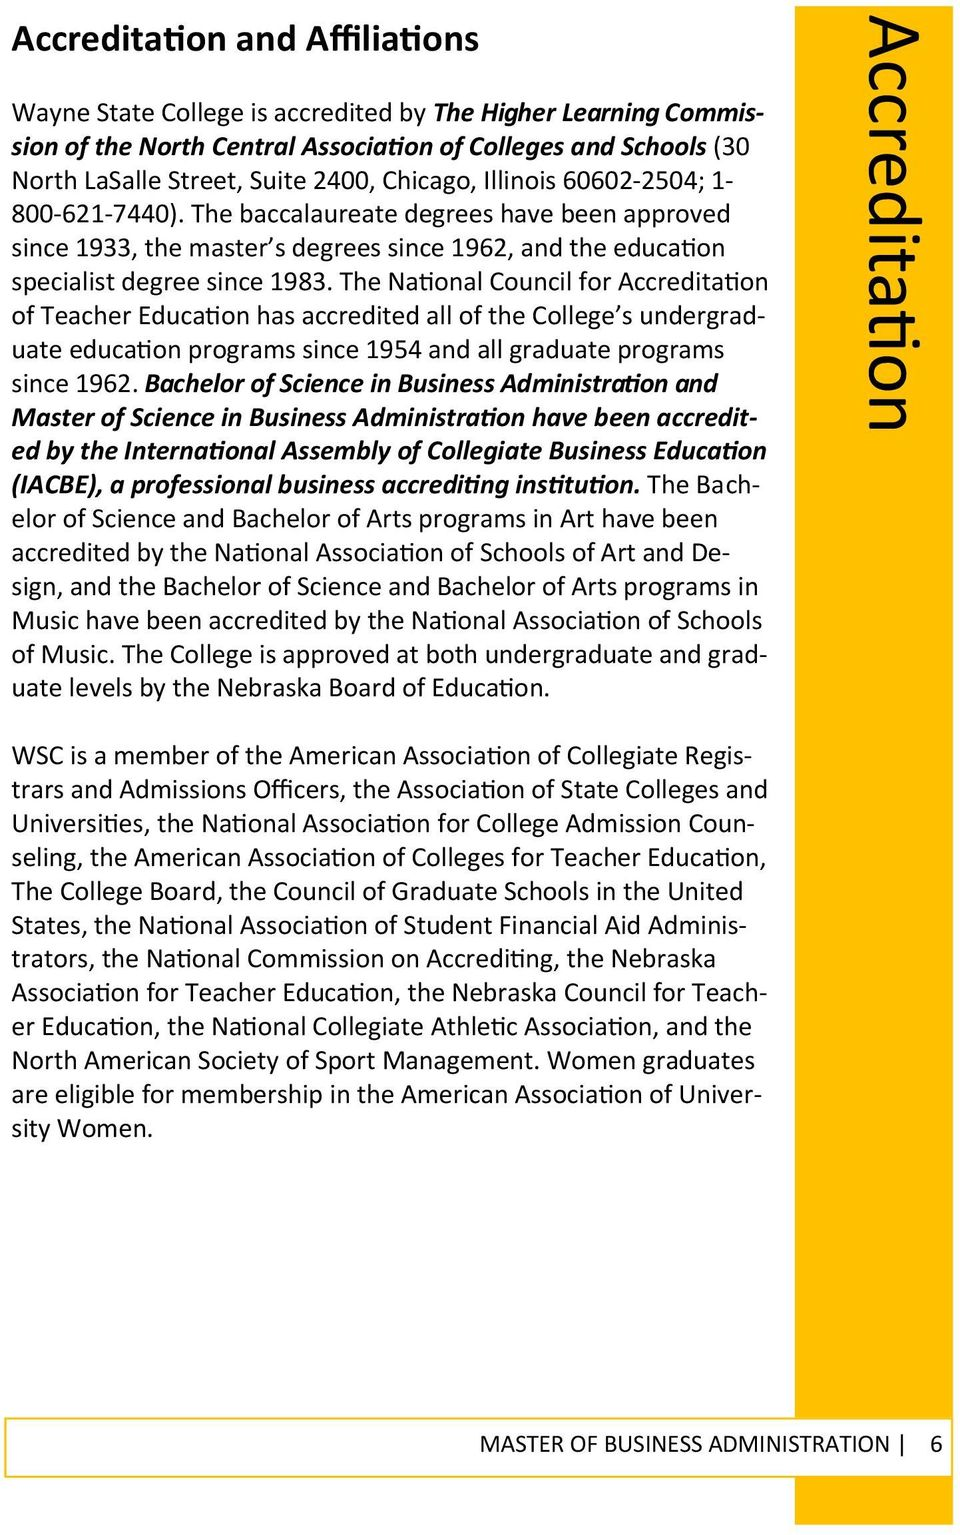 The Na onal Council for Accredita on of Teacher Educa on has accredited all of the College s undergraduate educa on programs since 1954 and all graduate programs since 1962.